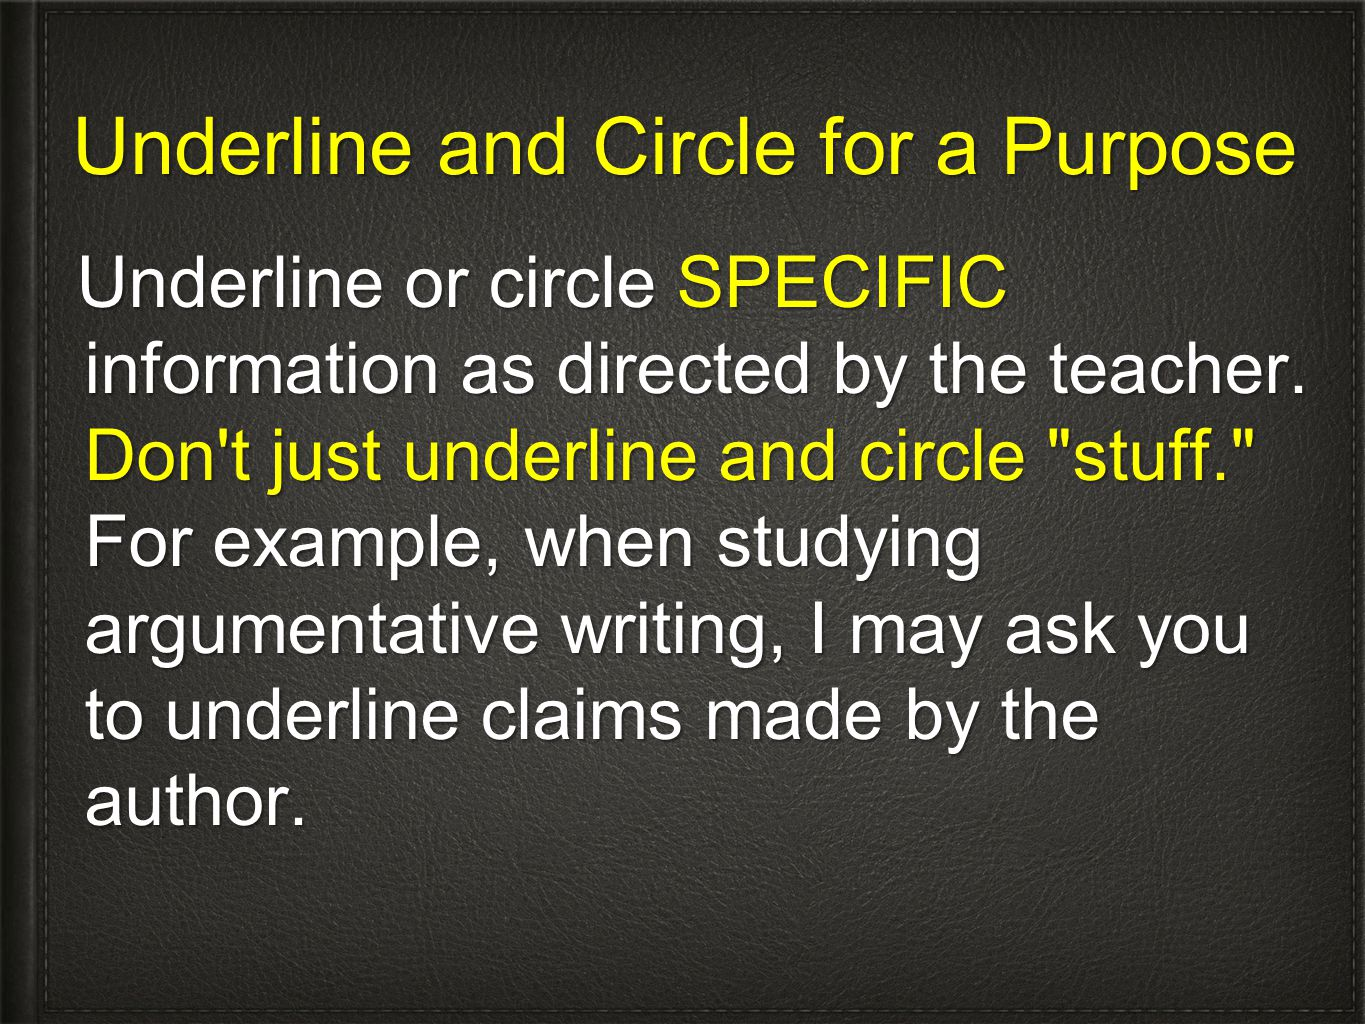 Underline and Circle for a Purpose